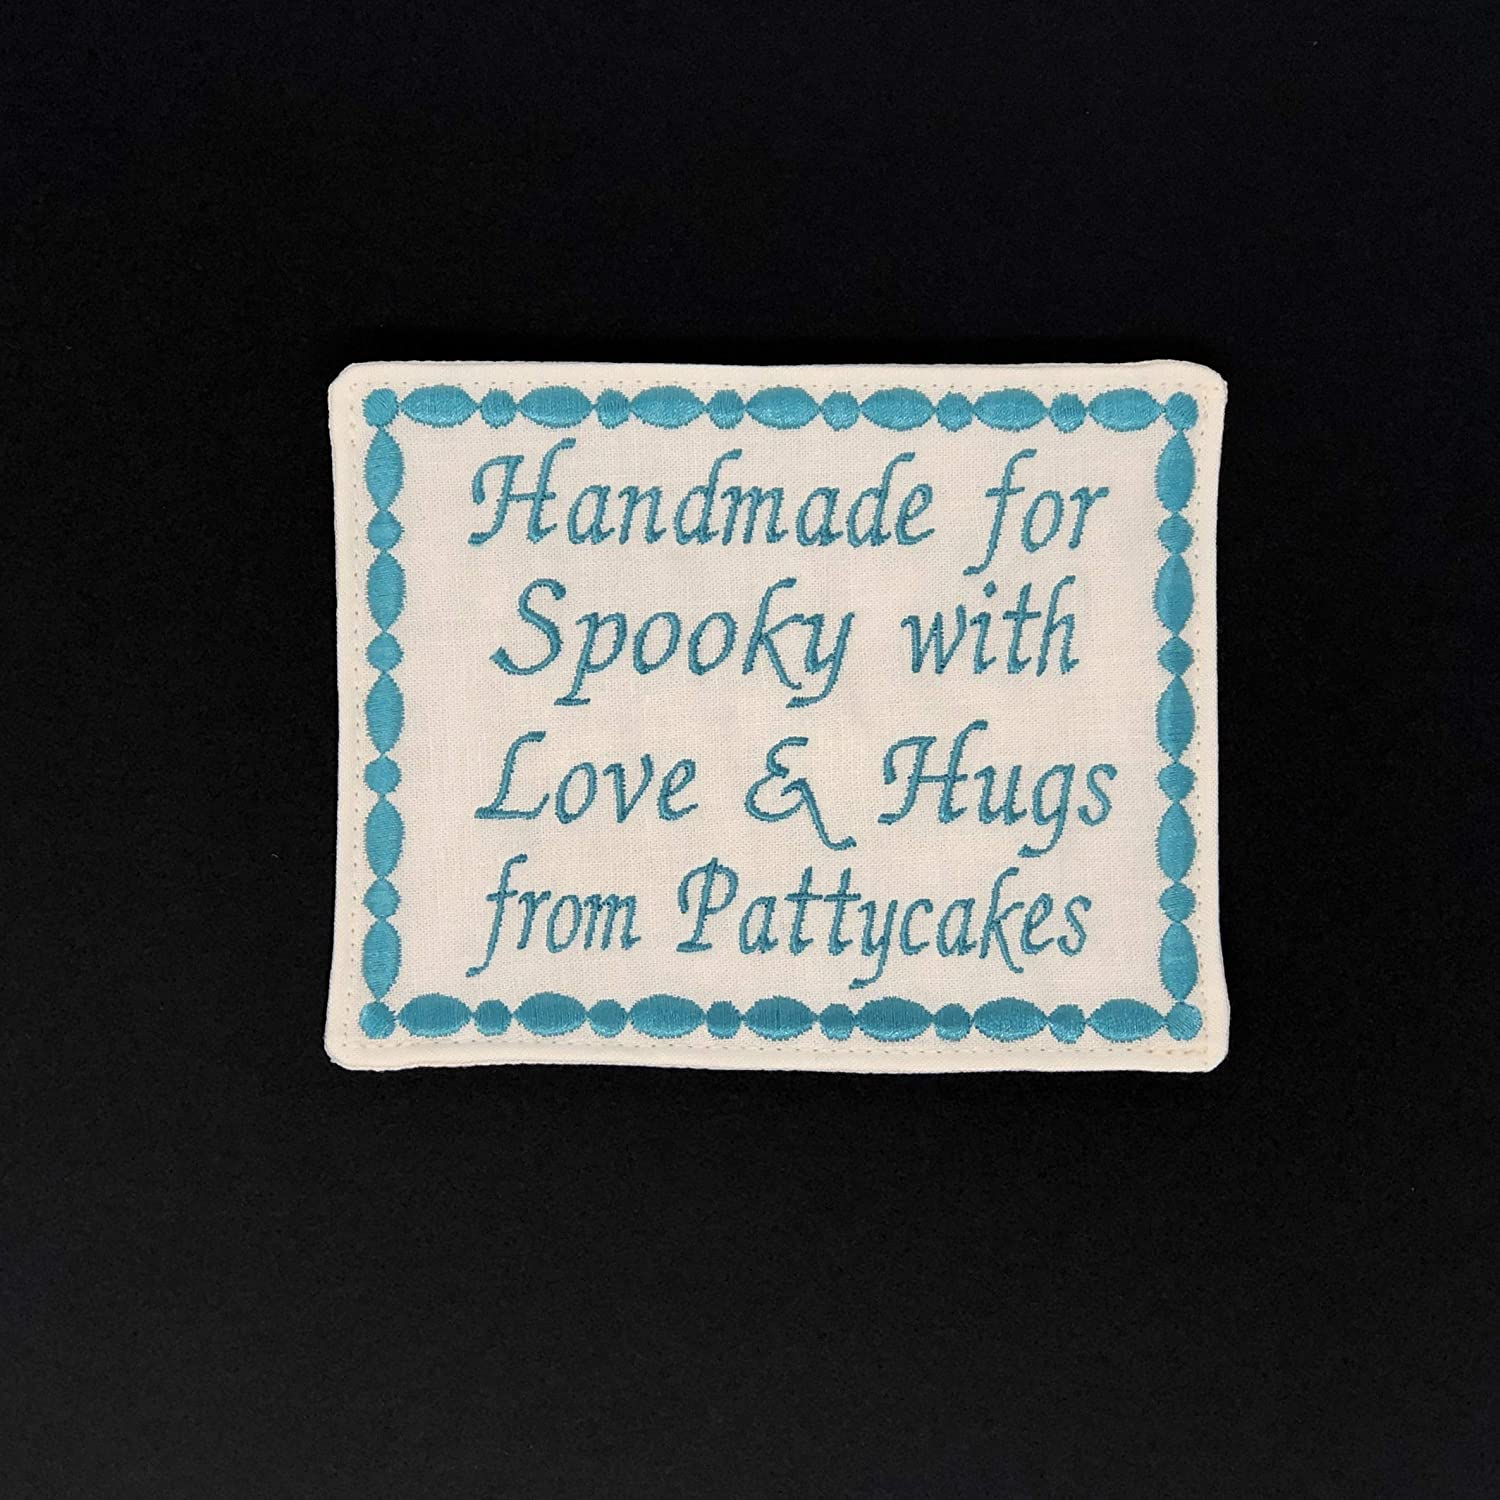 Custom Embroidered Label Quilt Label Personalized One Large Embroidered Label 4x5 inches